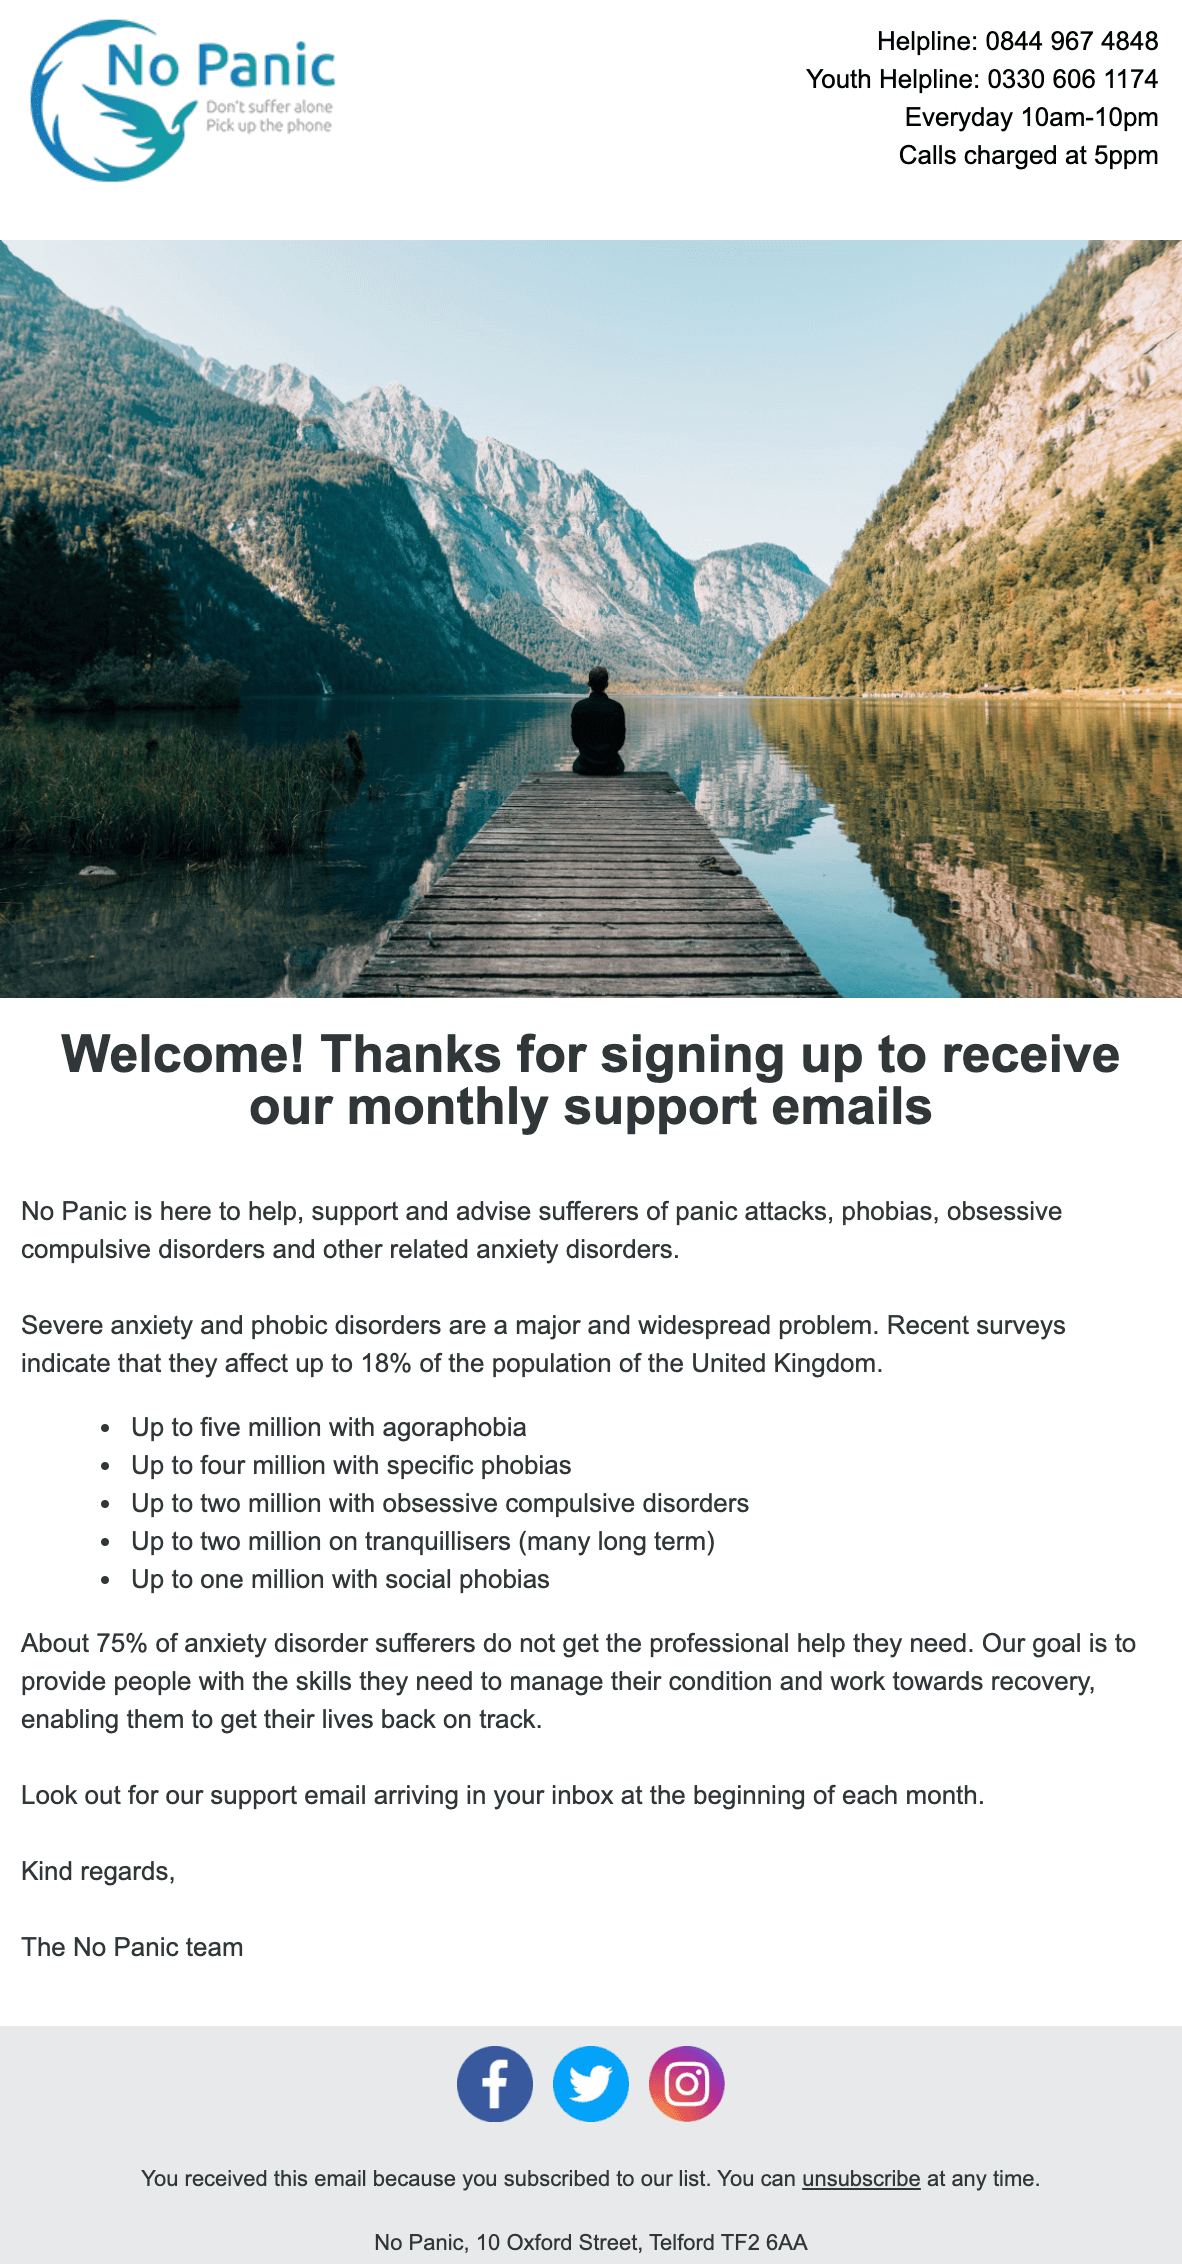 Image of No Panic's welcome email. The email includes statistics on anxiety disorders and the organisation's main goals.